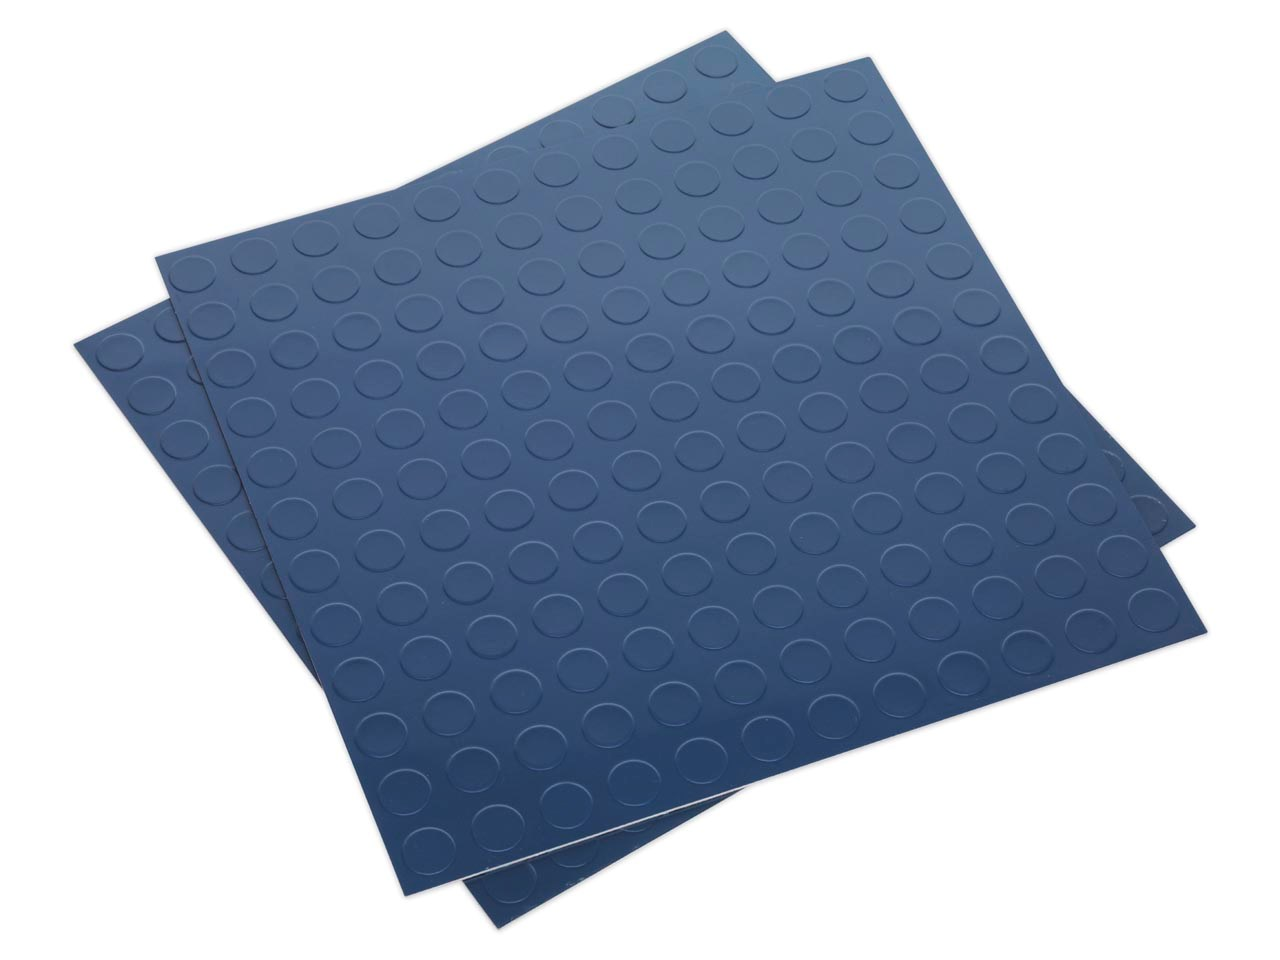 Sealey FT2B Vinyl Floor Tile with Peel & Stick Backing - Blue Coin ...